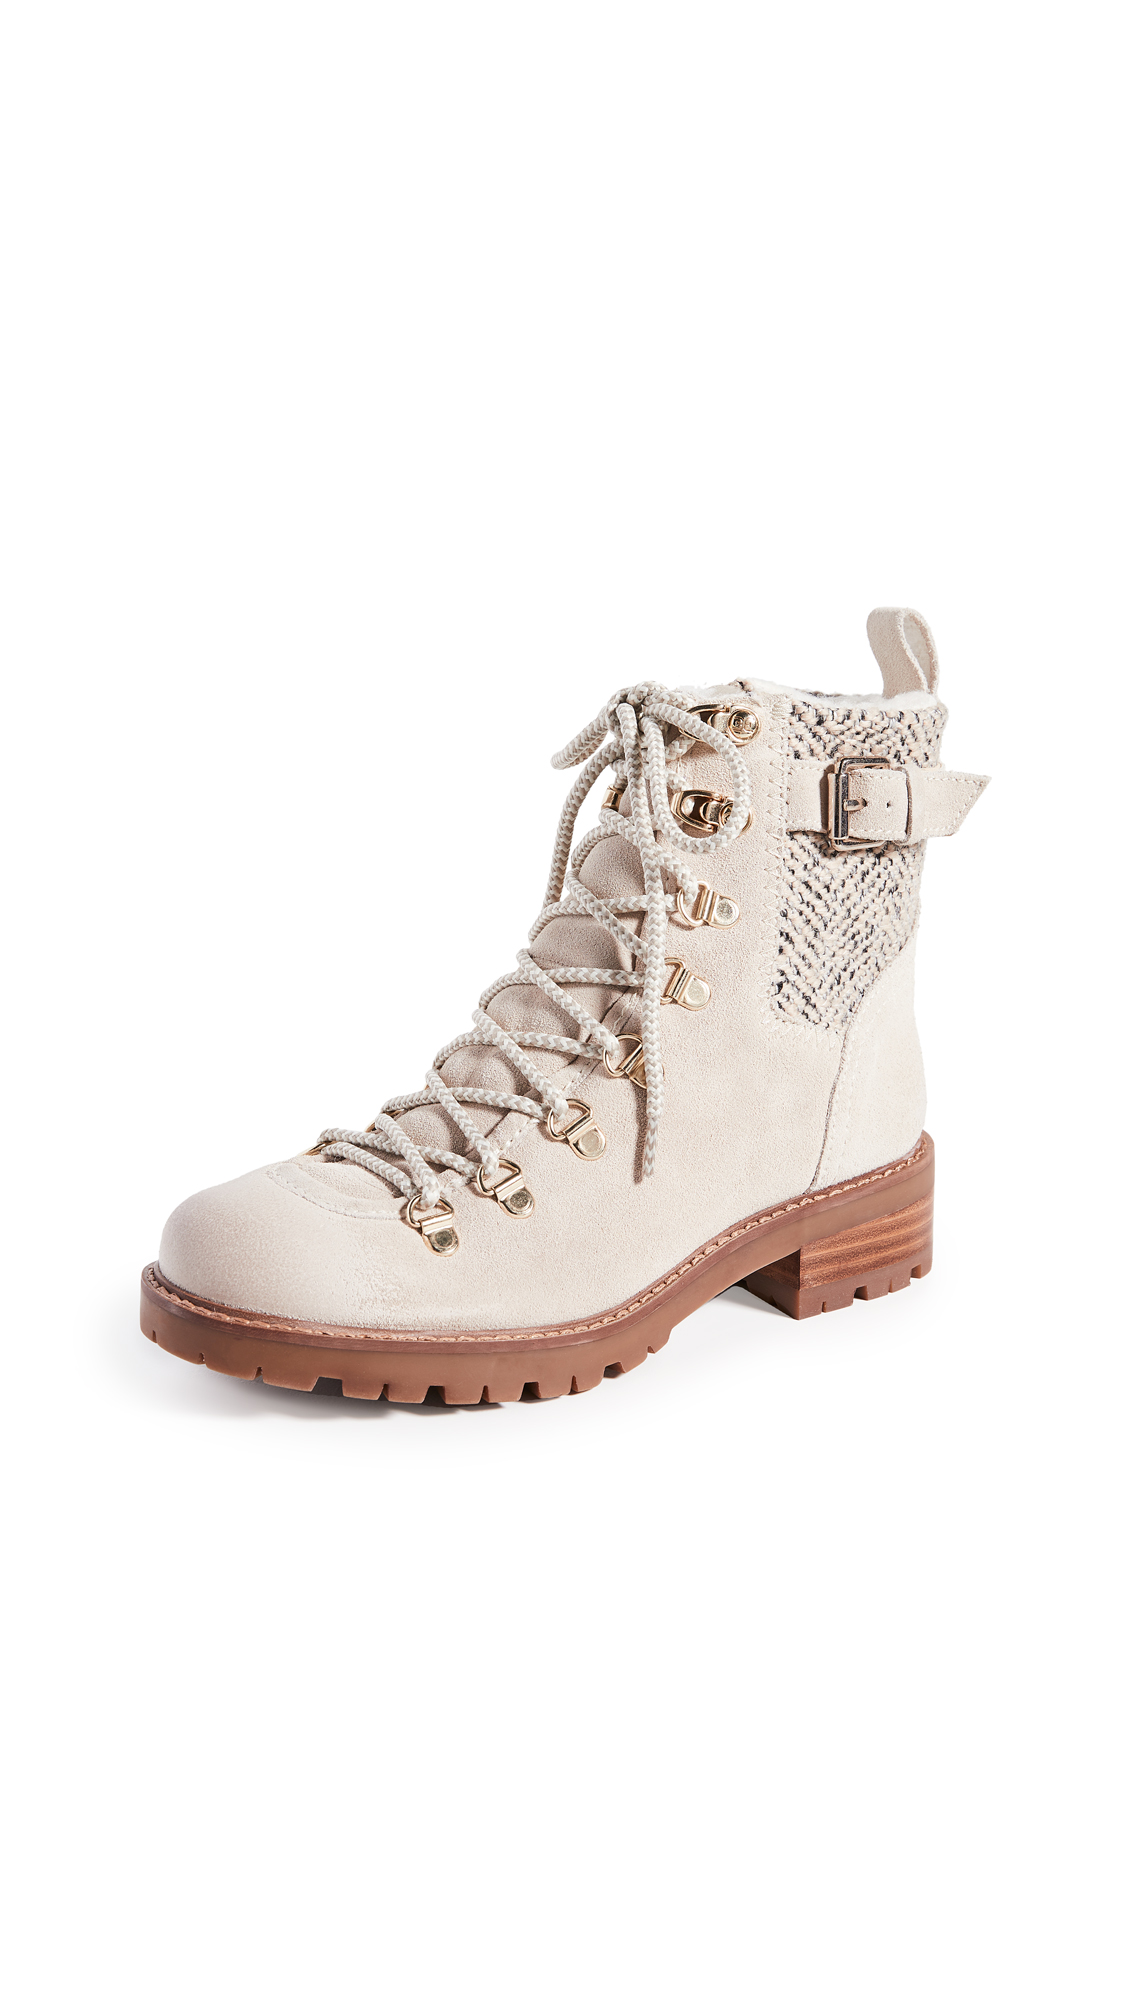 Sam Edelman Tenlee Boots - 70% Off Sale